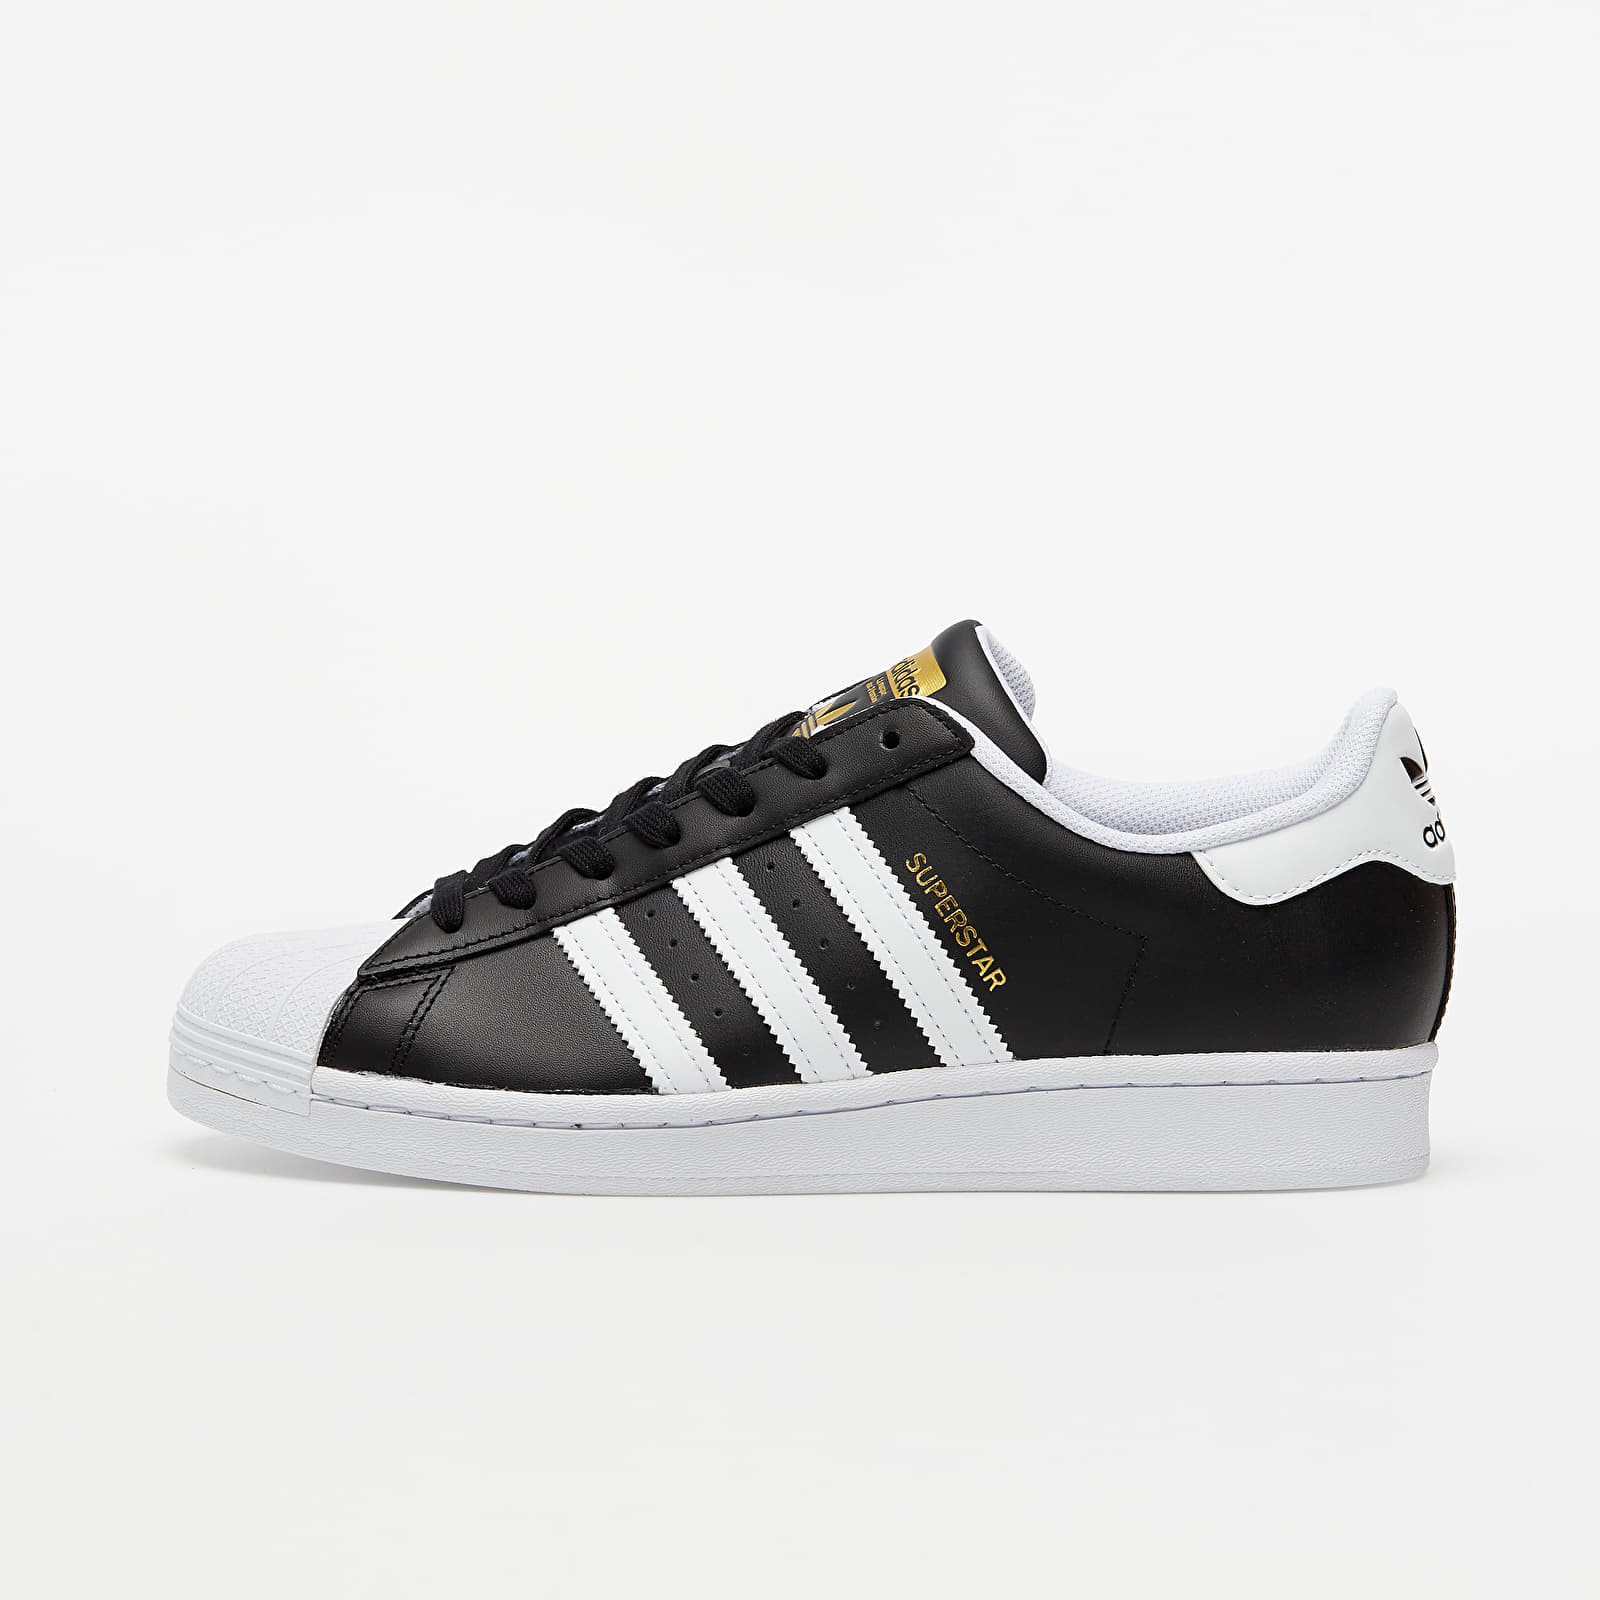 adidas Superstar Core Black/ Ftw White/ Gold Metalic EUR 42